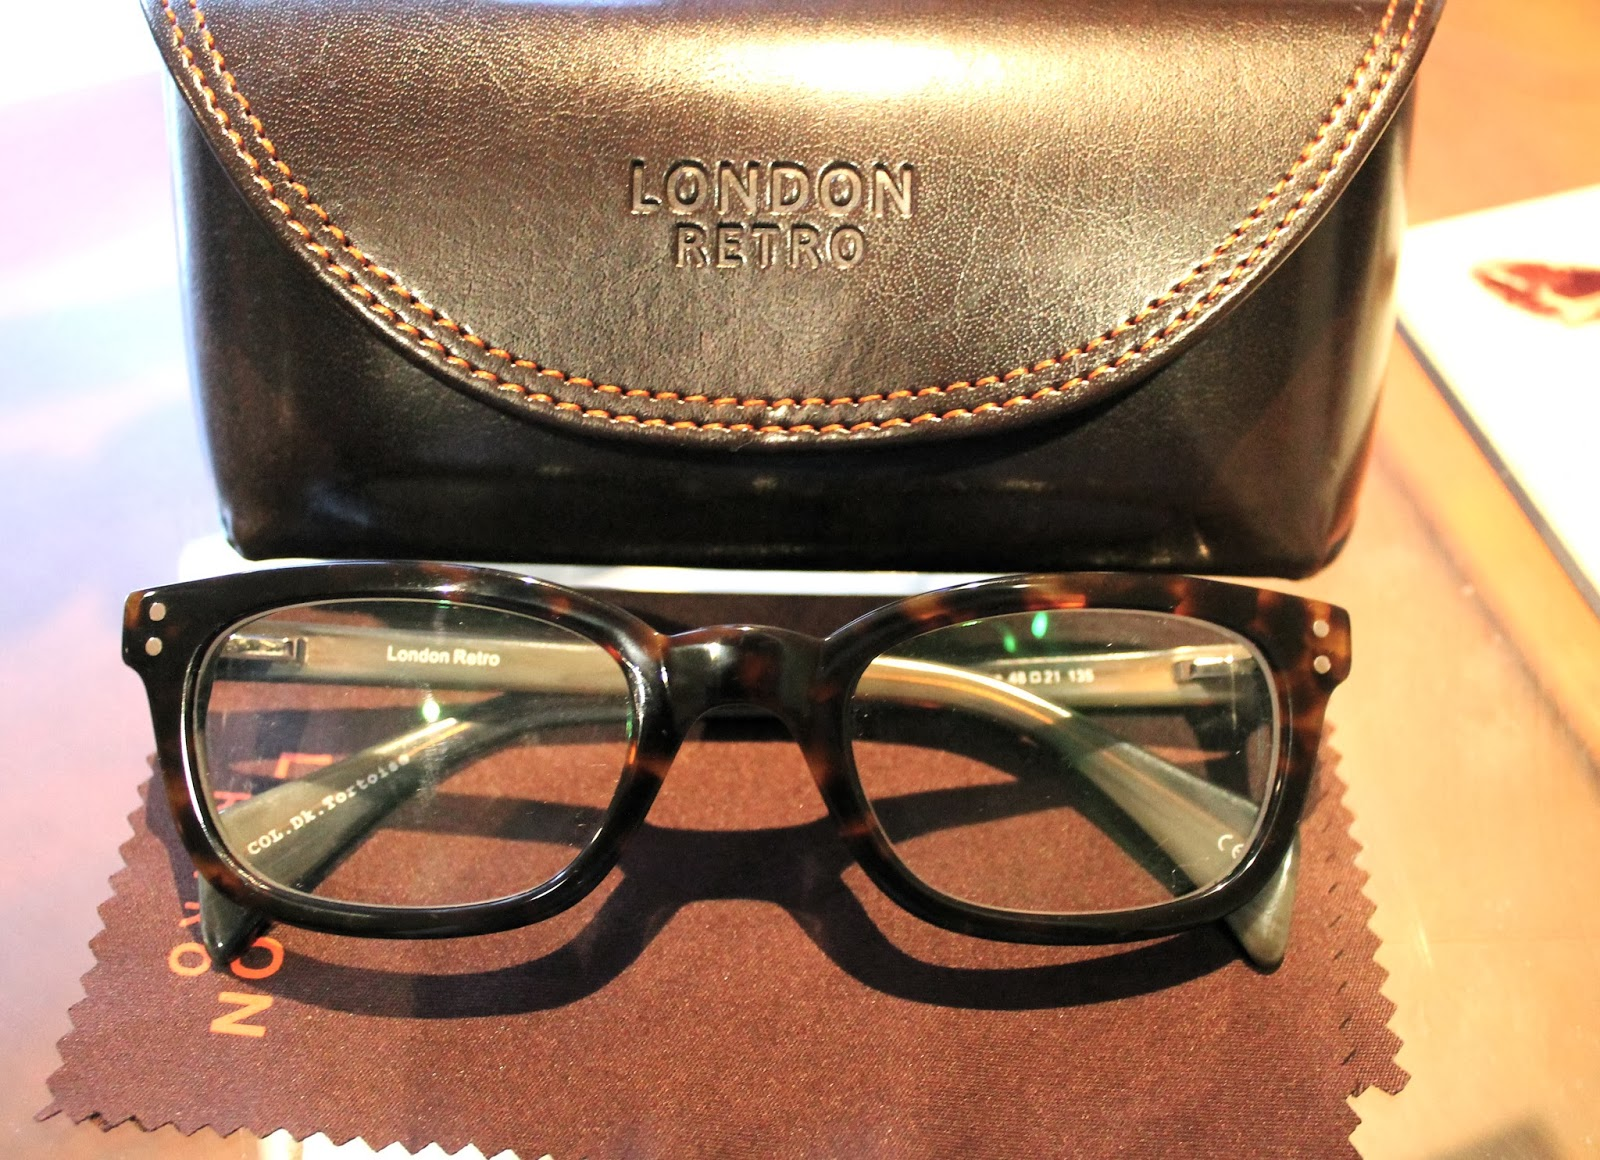 London Retro Soho Glasses